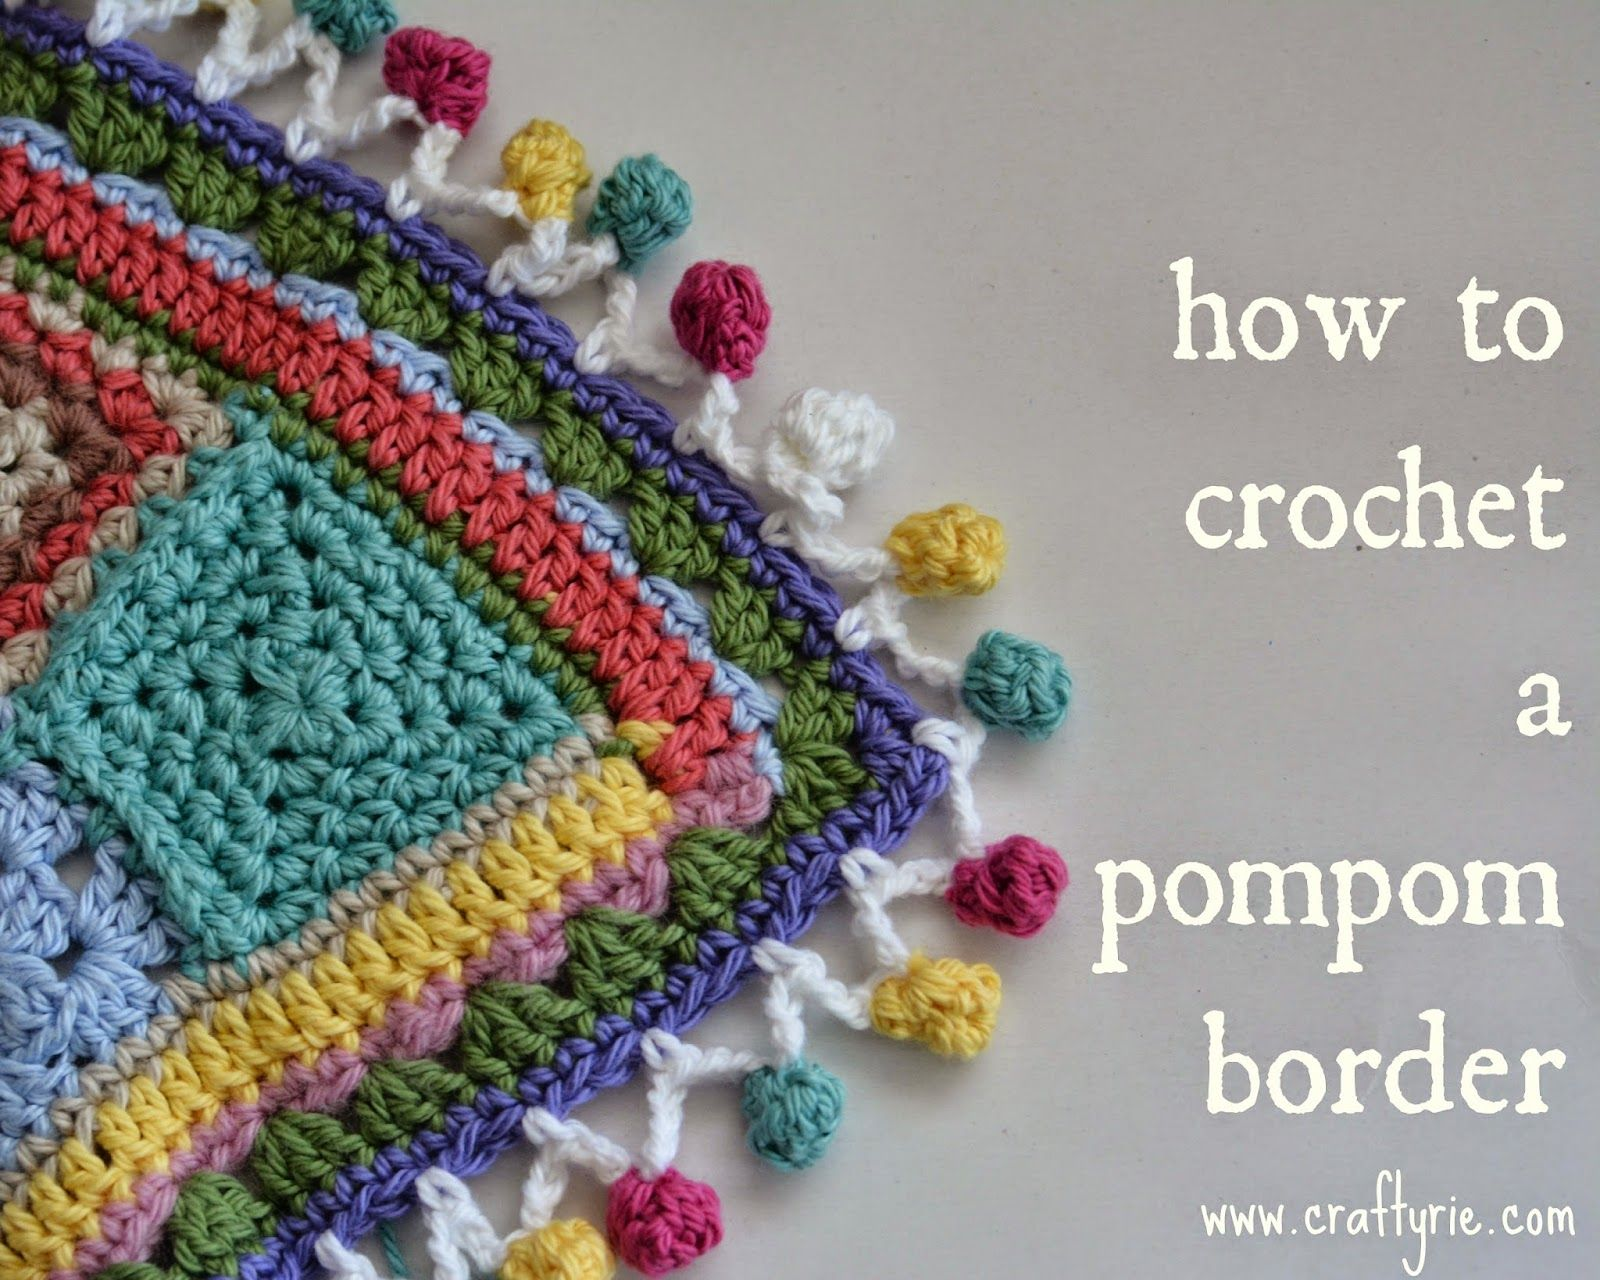 How To Crochet A Pompom Border Tutorial - (craftyrie) thanks so xox ☆ ★   https://uk.pinterest.com/peacefuldoves/